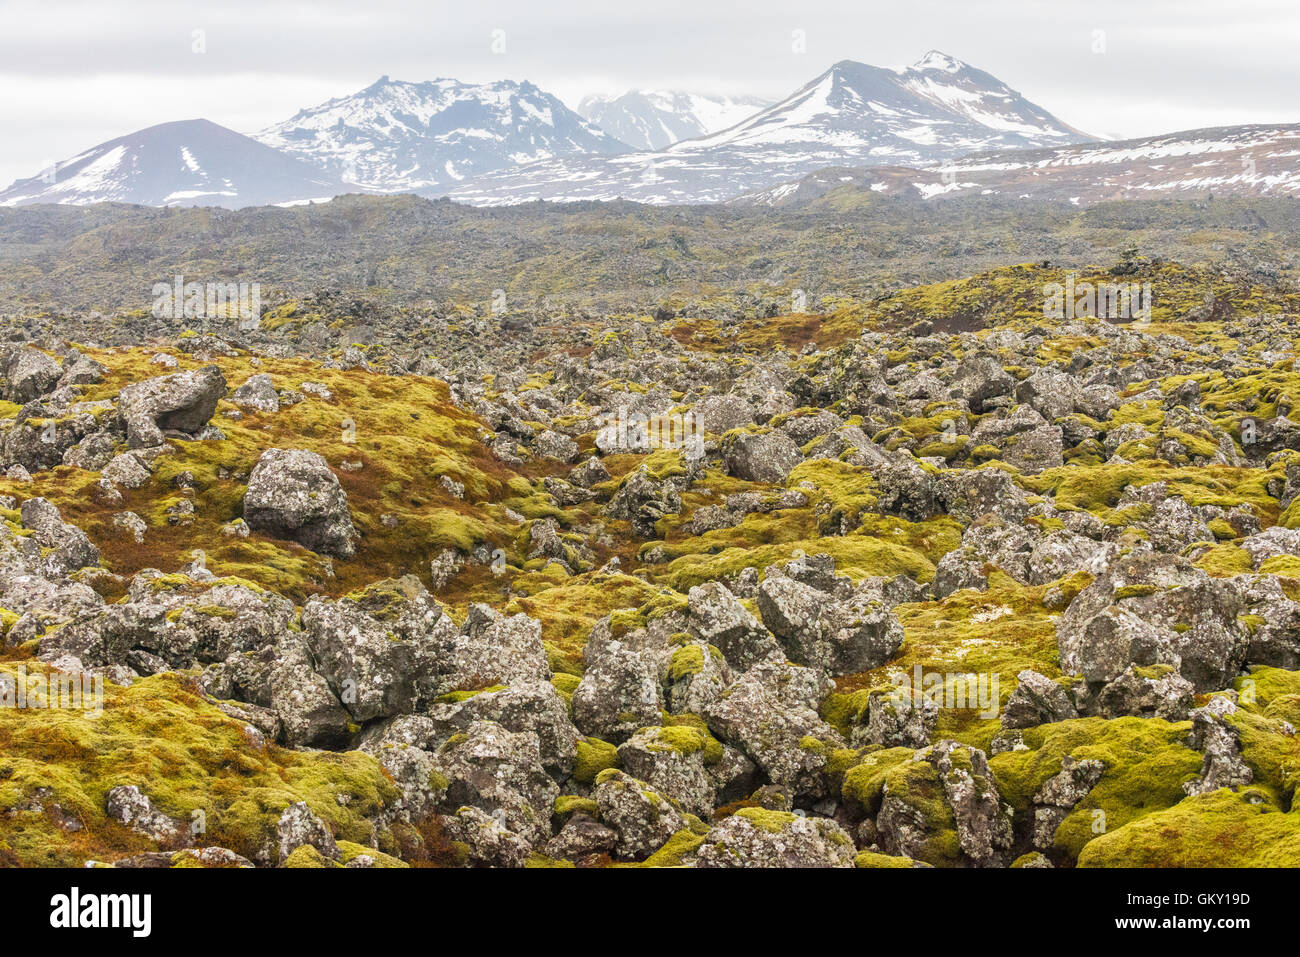 The Berserkjahraun is a 3 to 4,000 year old rocky and mossy lava field in the Snaefellsnes peninsula, western Iceland. - Stock Image